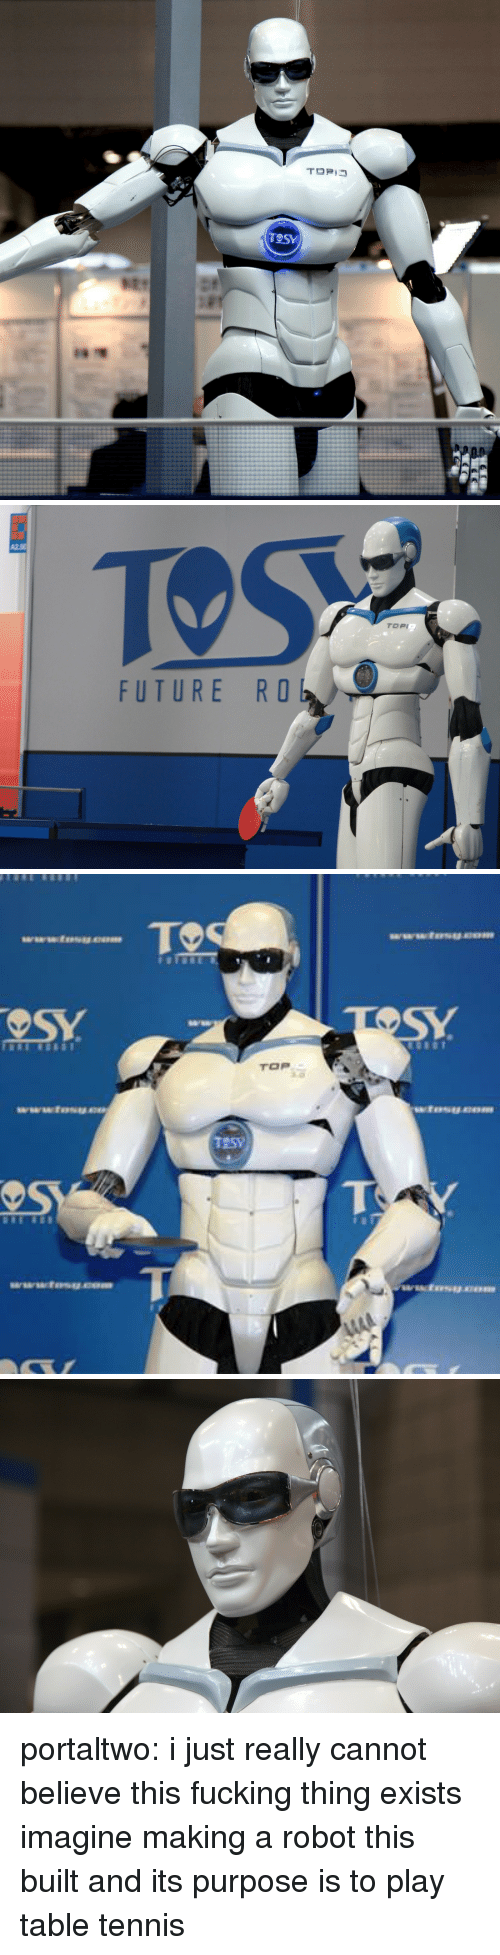 tos: TOSy   TOS  A25  FUTURE RO   TOP  www.fosu portaltwo: i just really cannot believe this fucking thing exists imagine making a robot this built and its purpose is to play table tennis